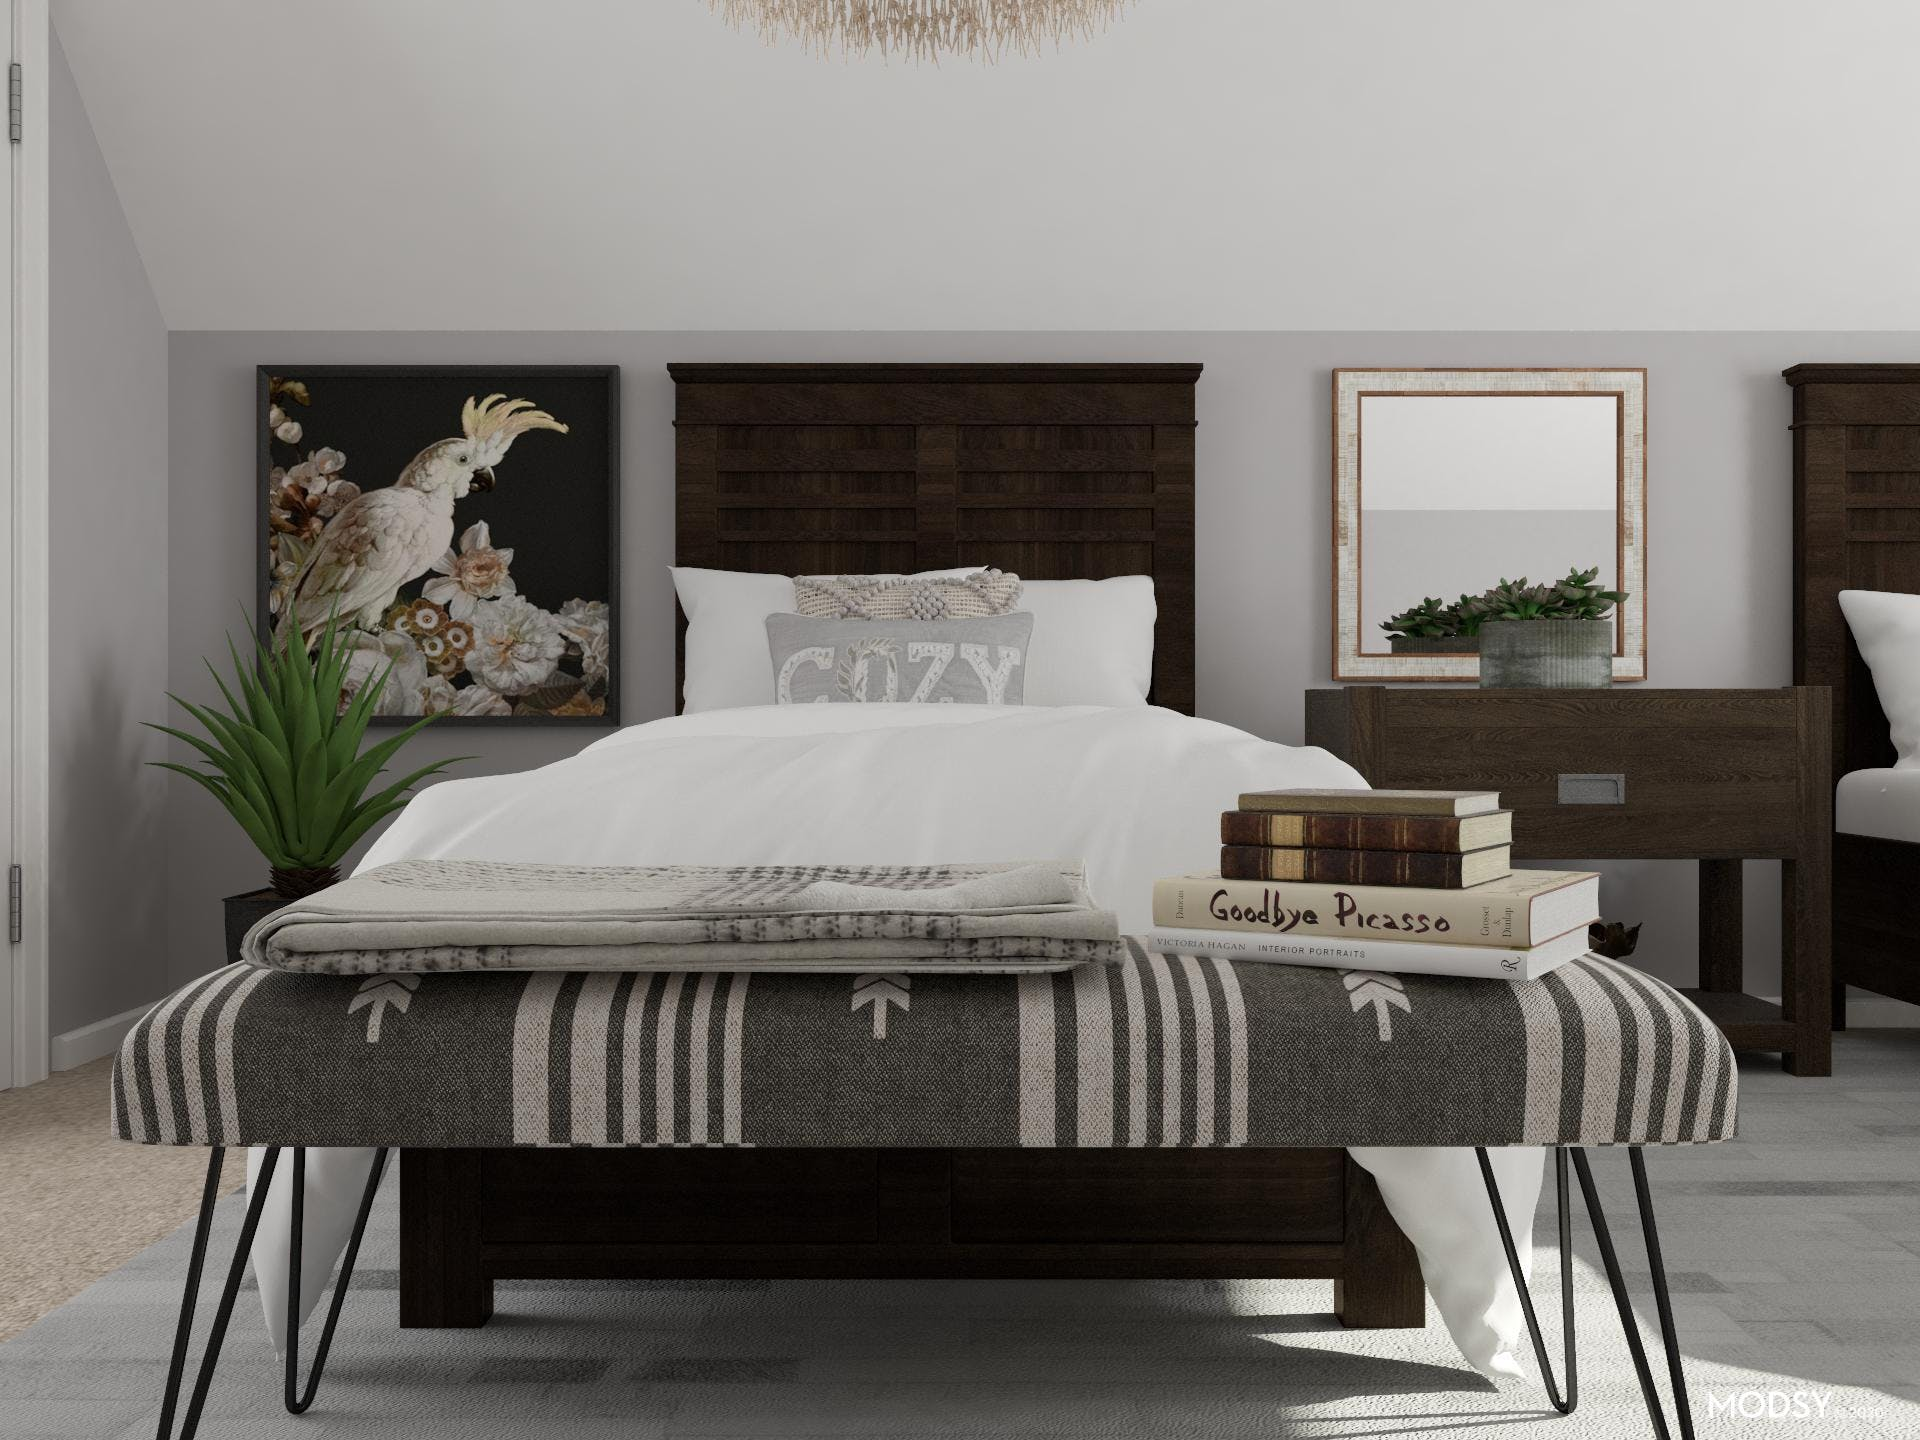 An Eclectic Bedroom Awaits Your Guests